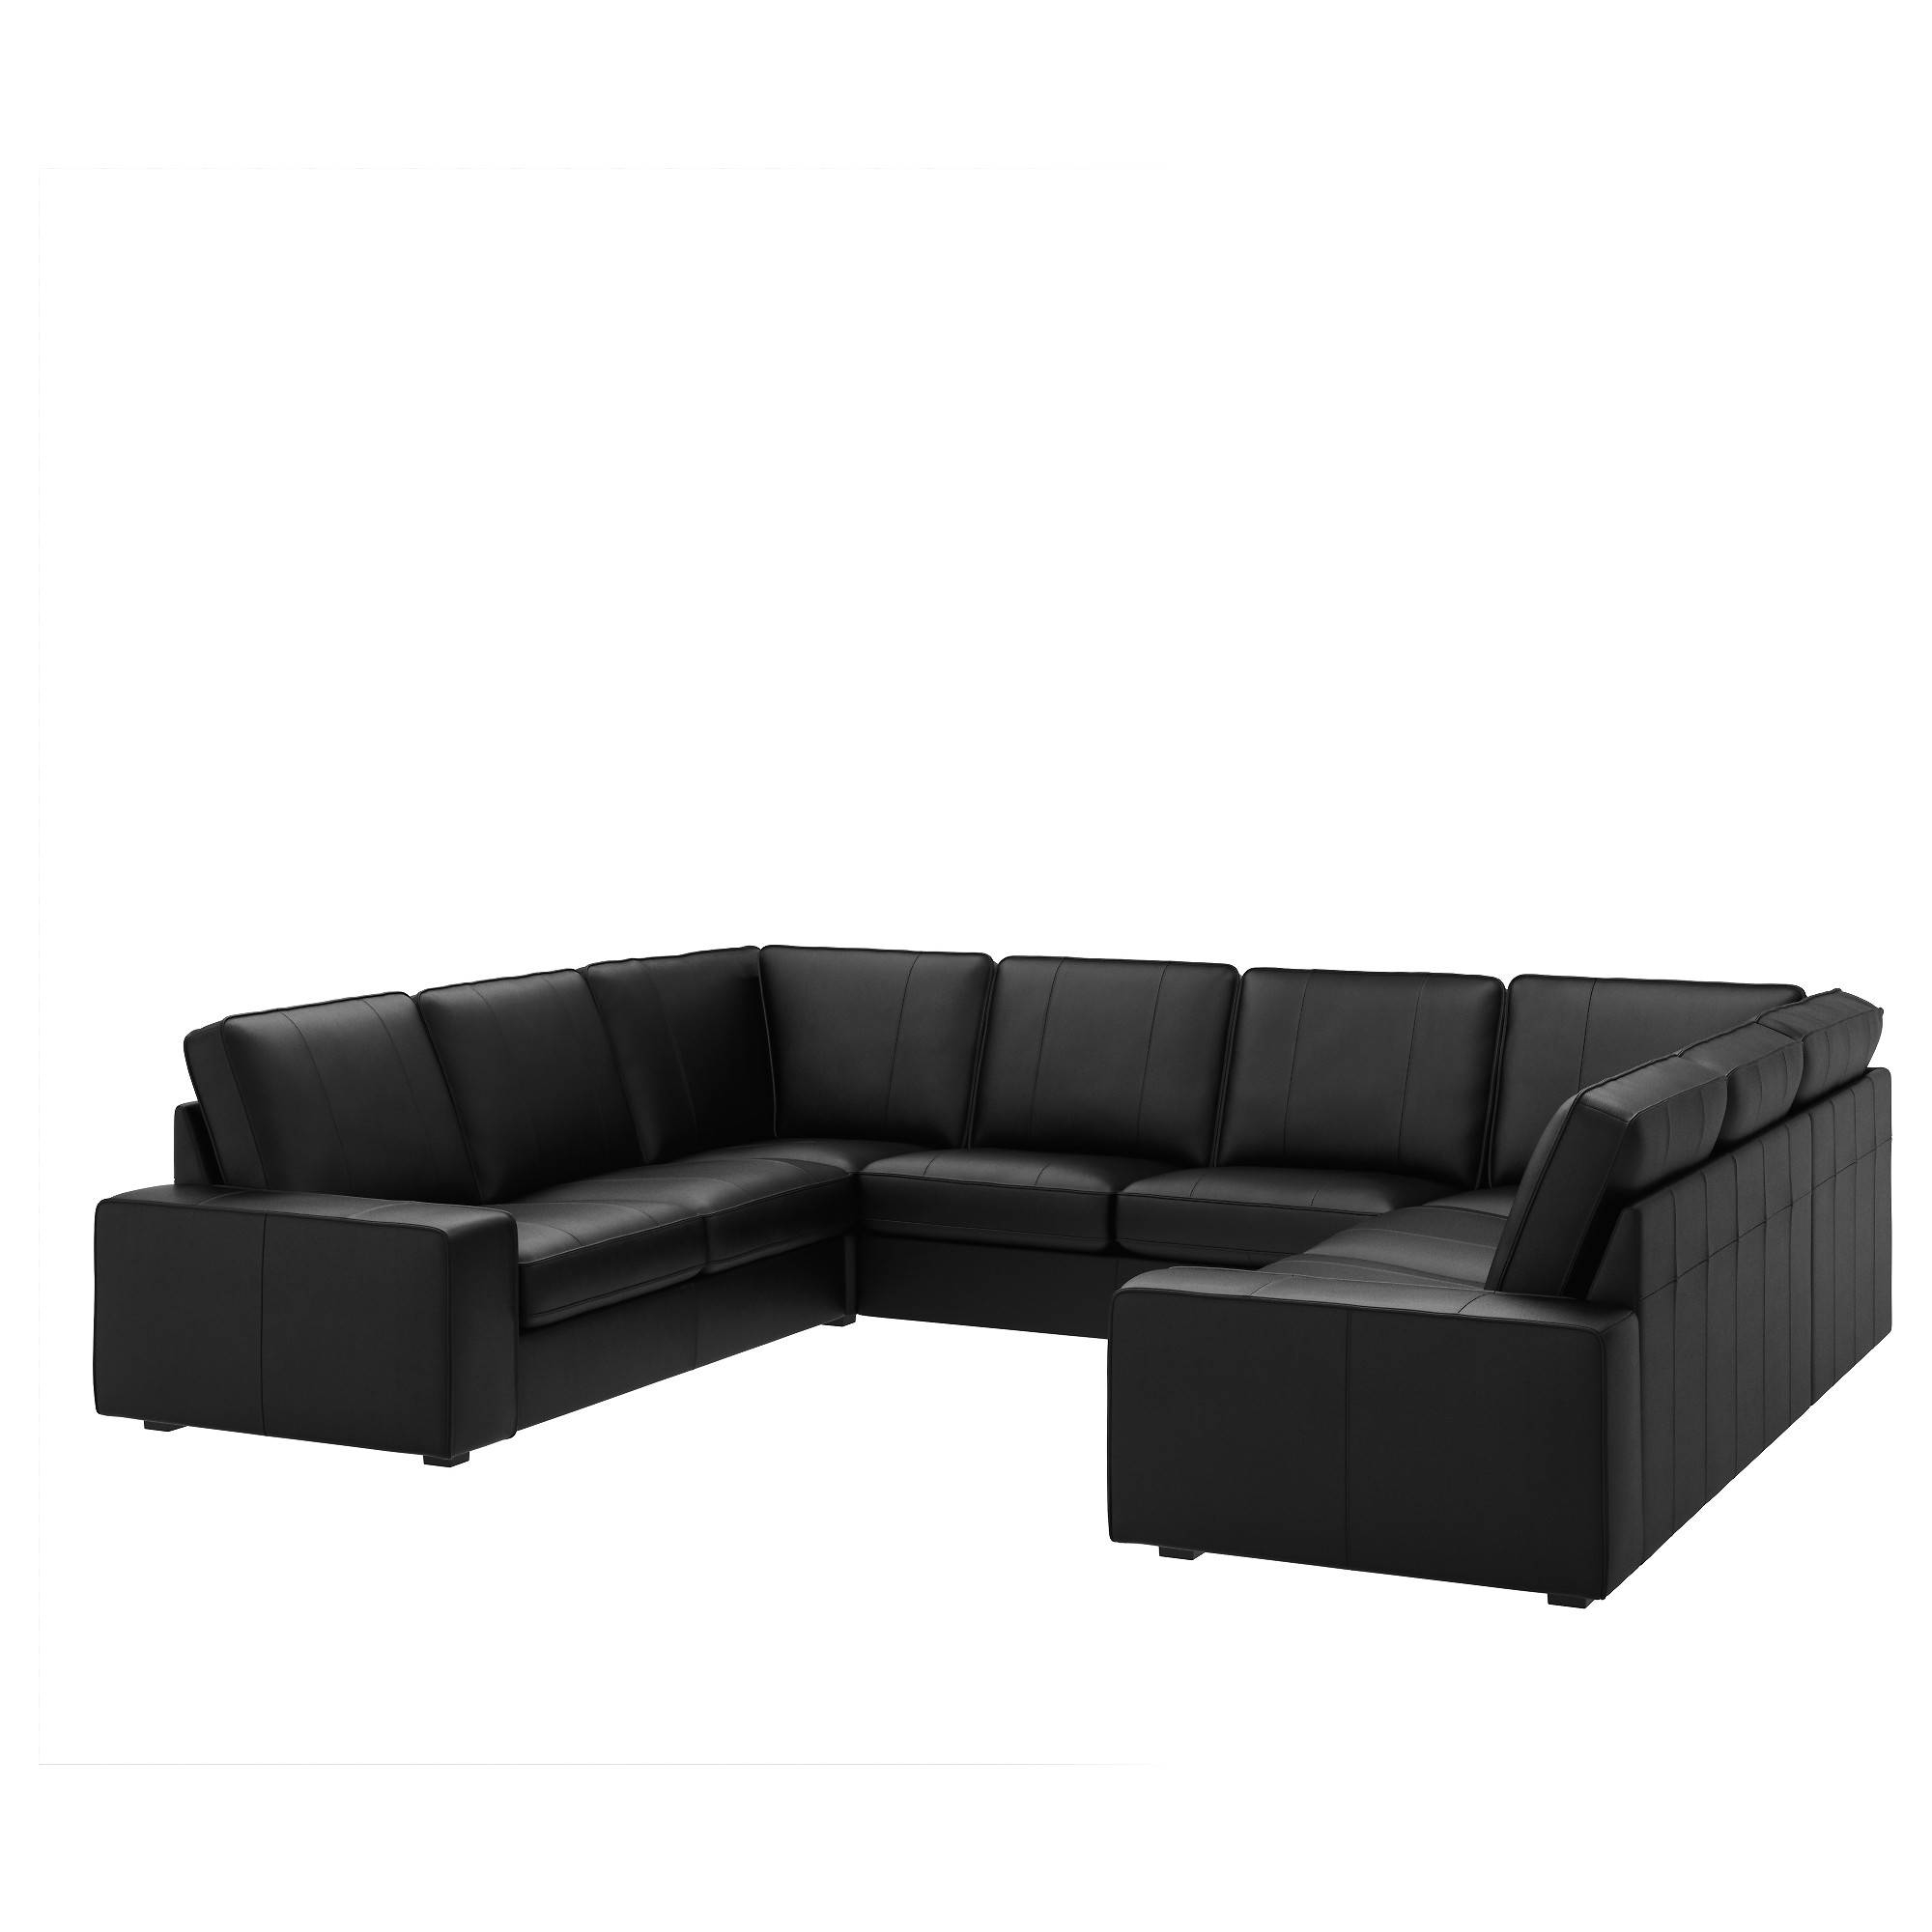 Sectional Sofas & Couches - Ikea intended for Angled Sofa Sectional (Image 23 of 30)